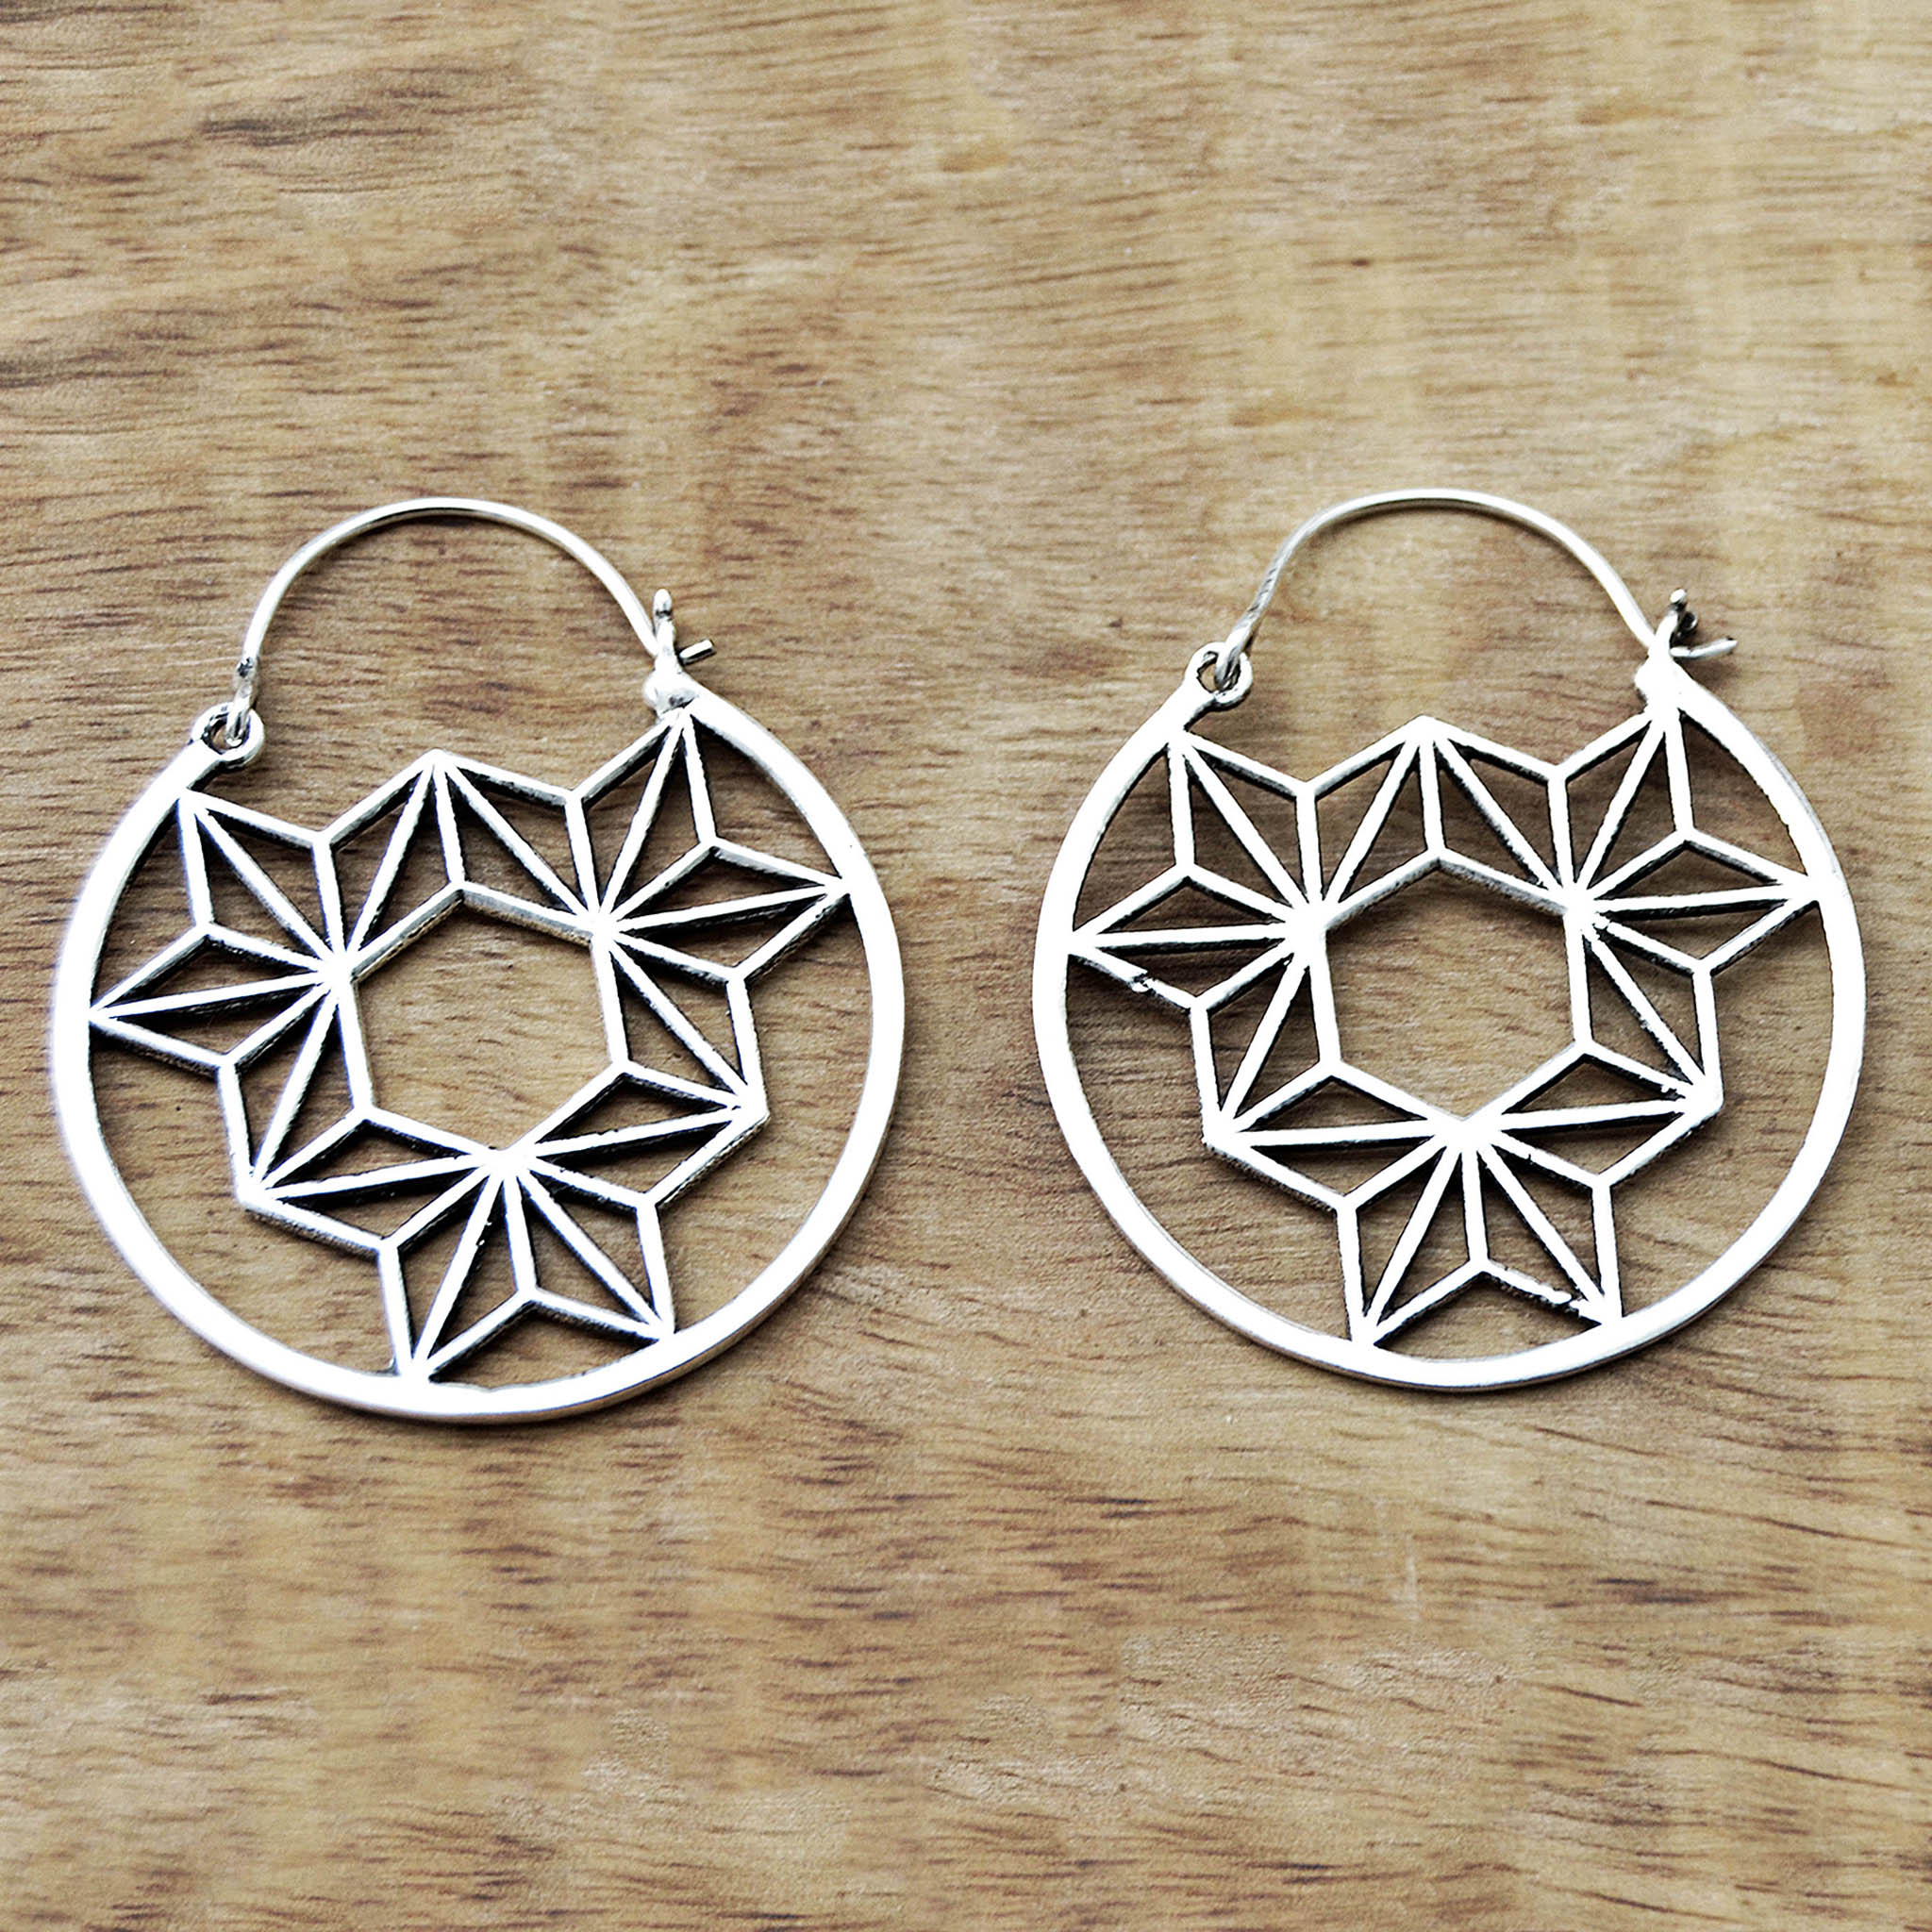 Geometric mandala earrings